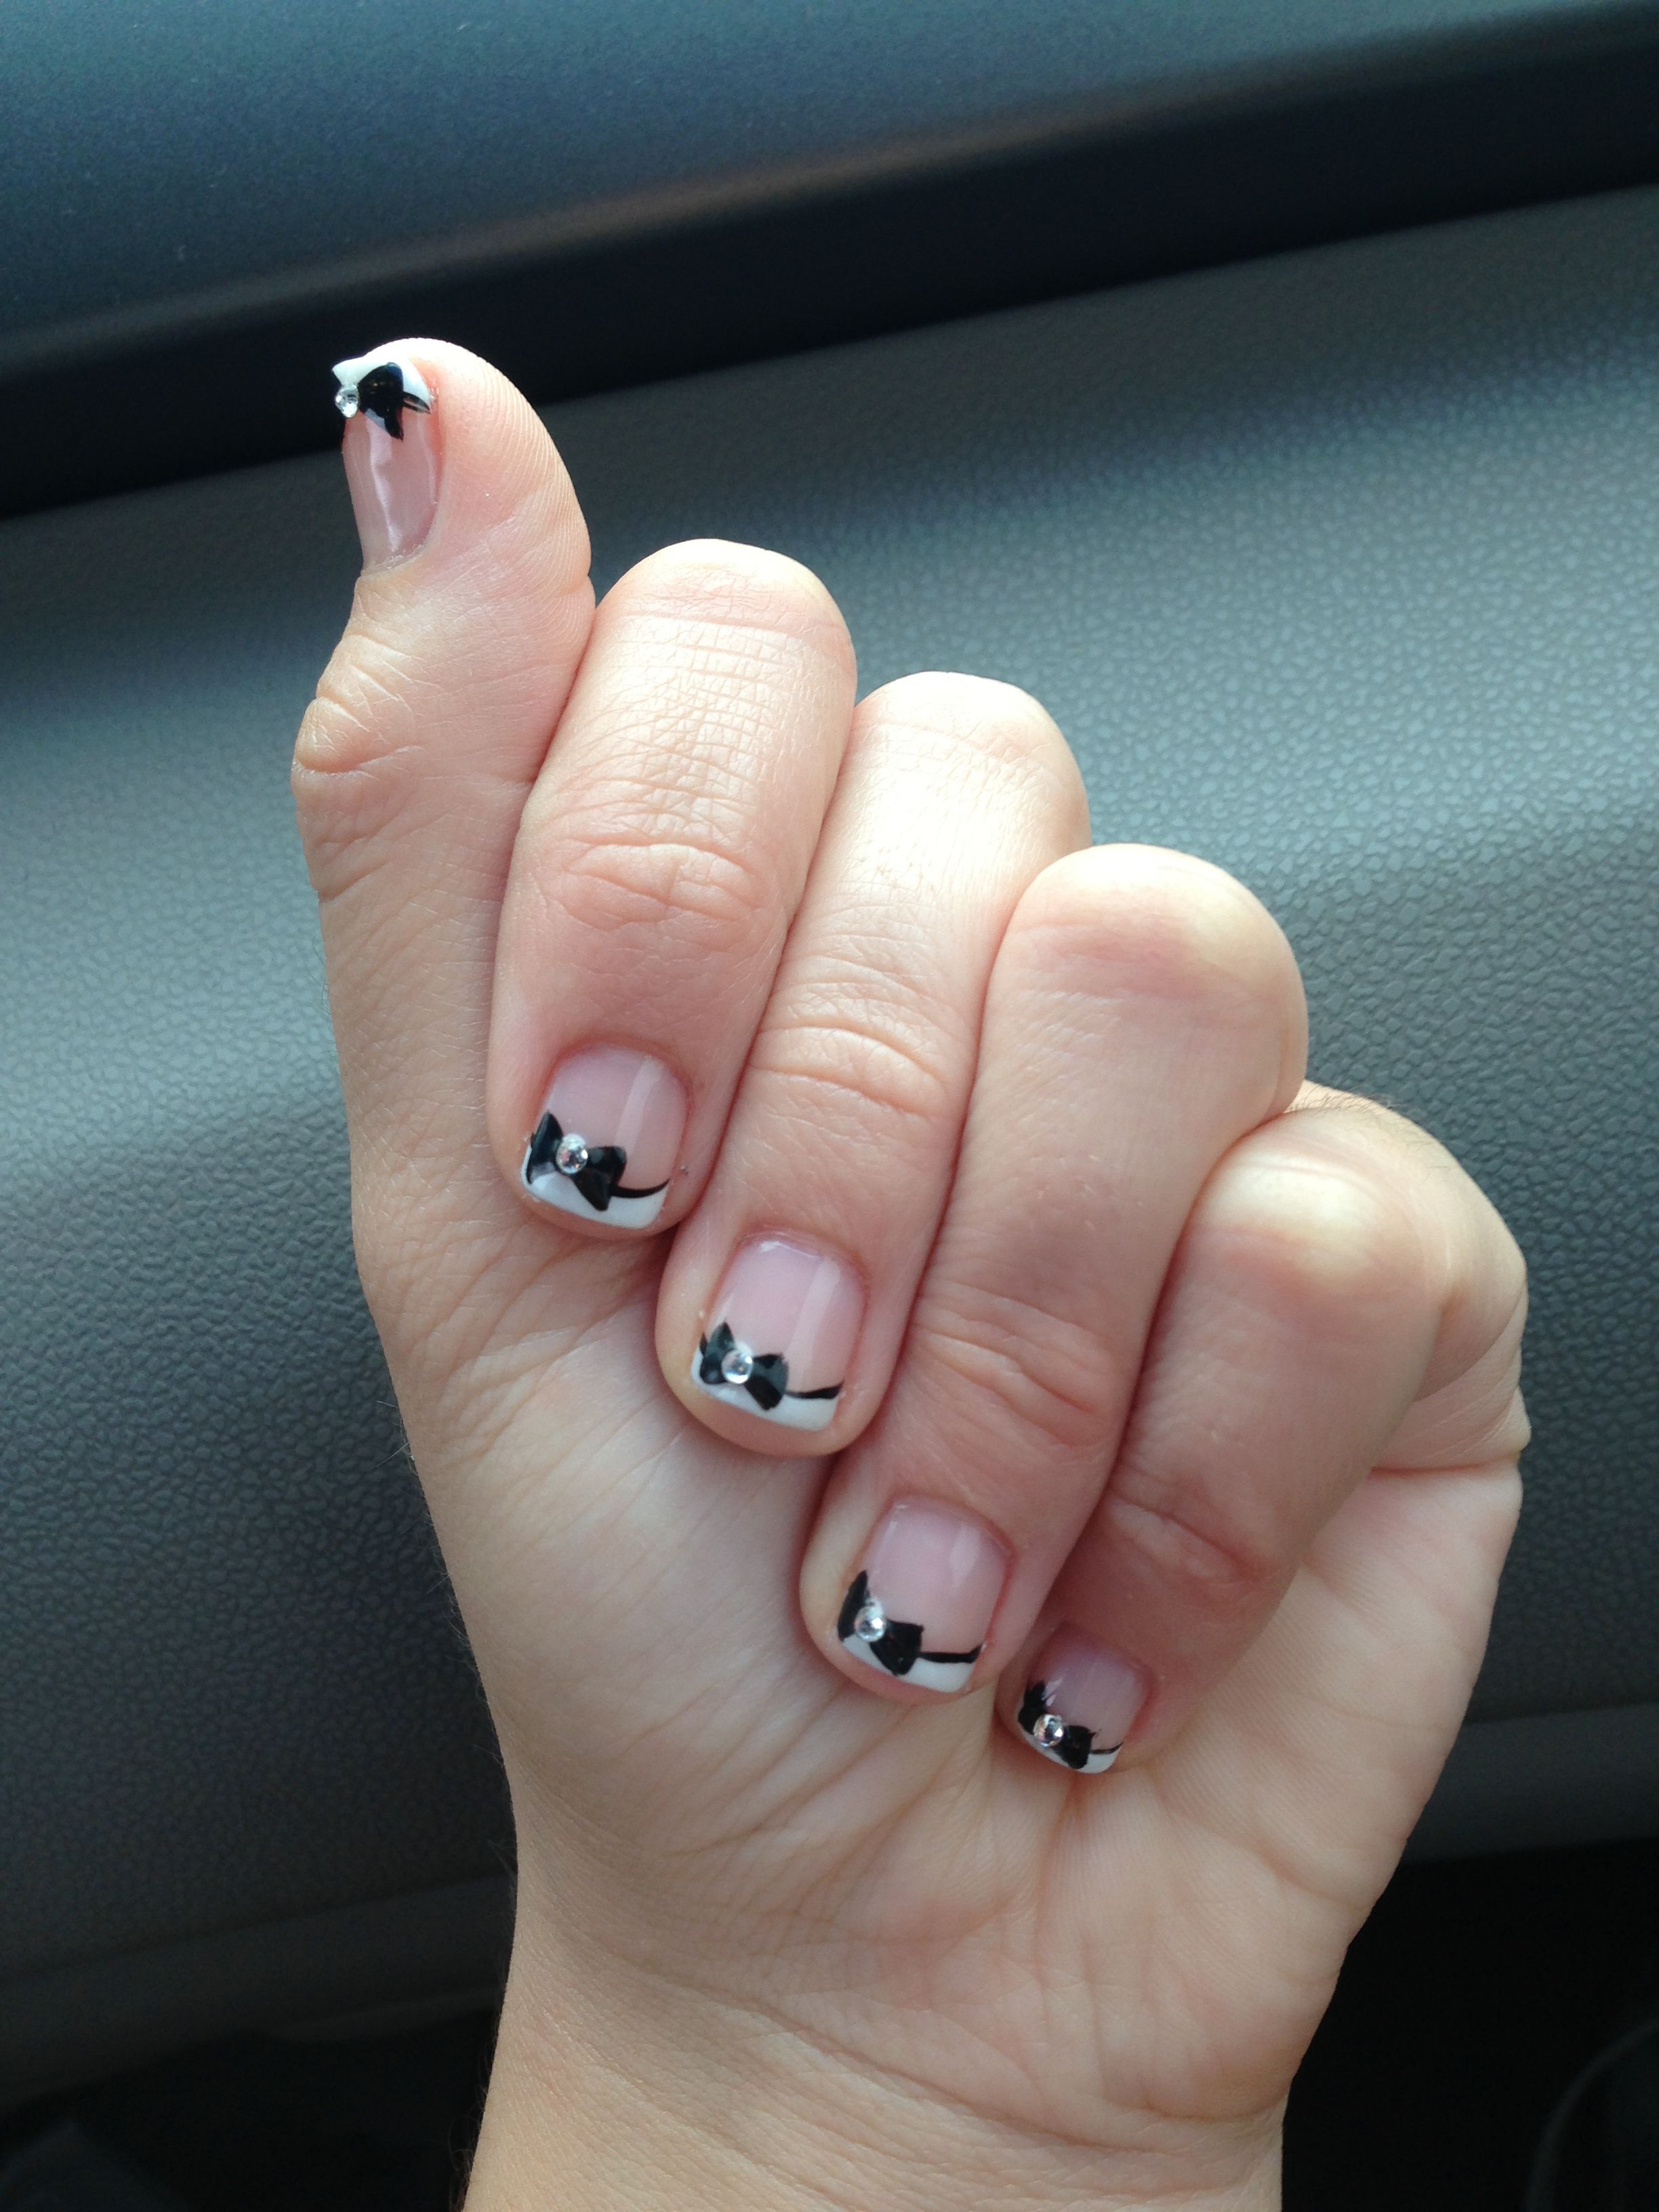 Cute Gel Nails With Bow Design And French Tips Really Really Like